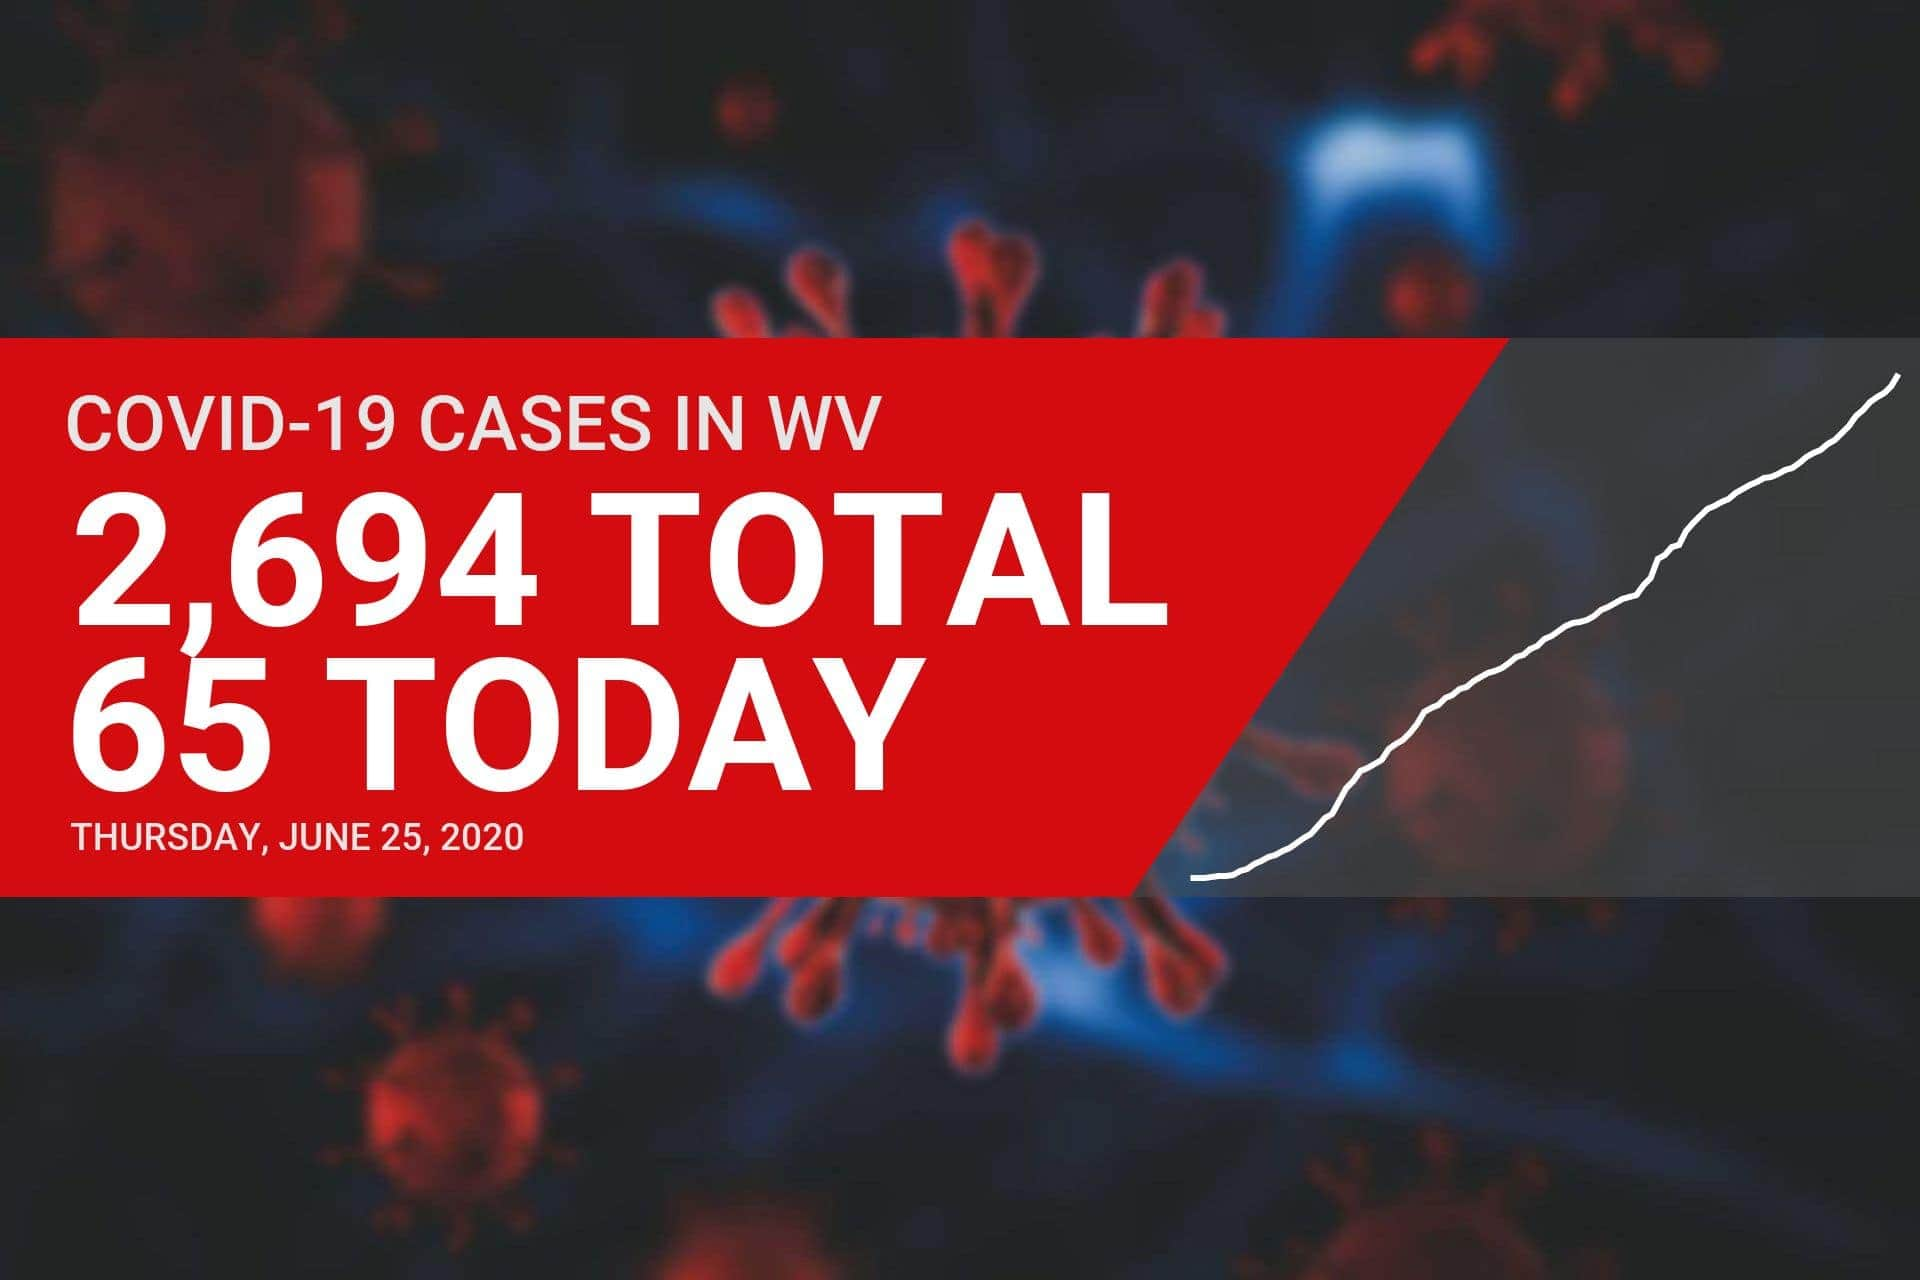 Local doctor offers guidance as 65 new COVID-19 cases are reported in West Virginia on Thursday